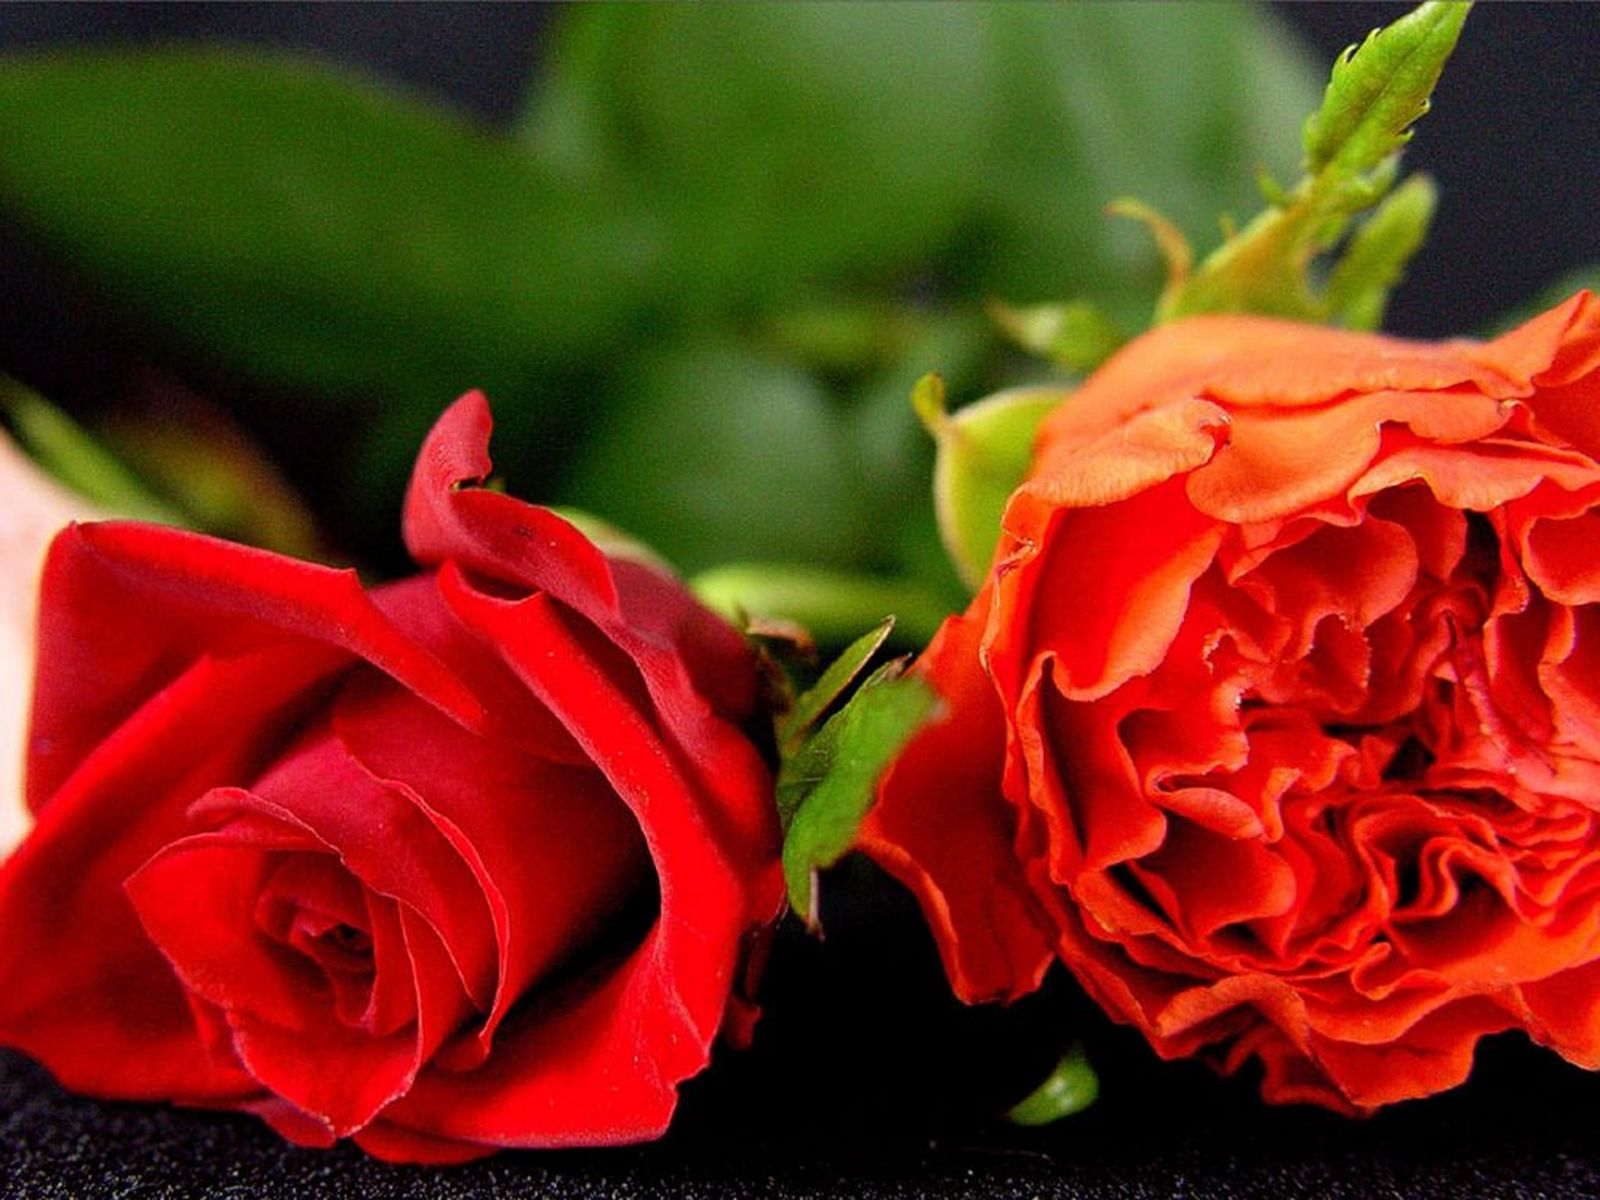 Natural Roses Meaning Of Red Roses